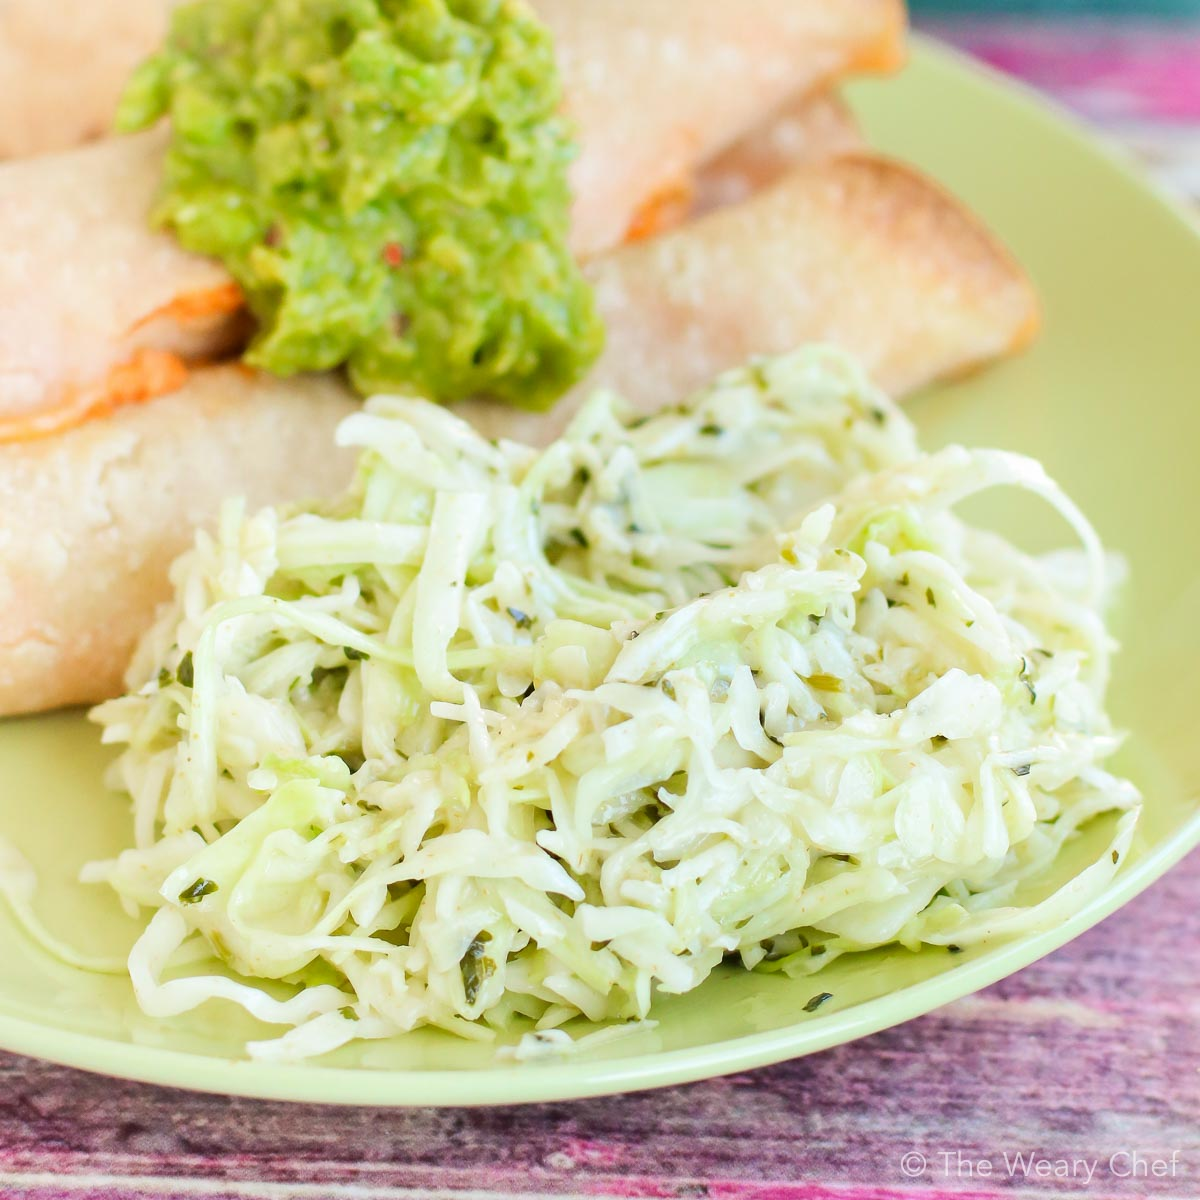 Mexican Coleslaw pairs perfectly with taquitos, enchiladas, or any Mexican fare!